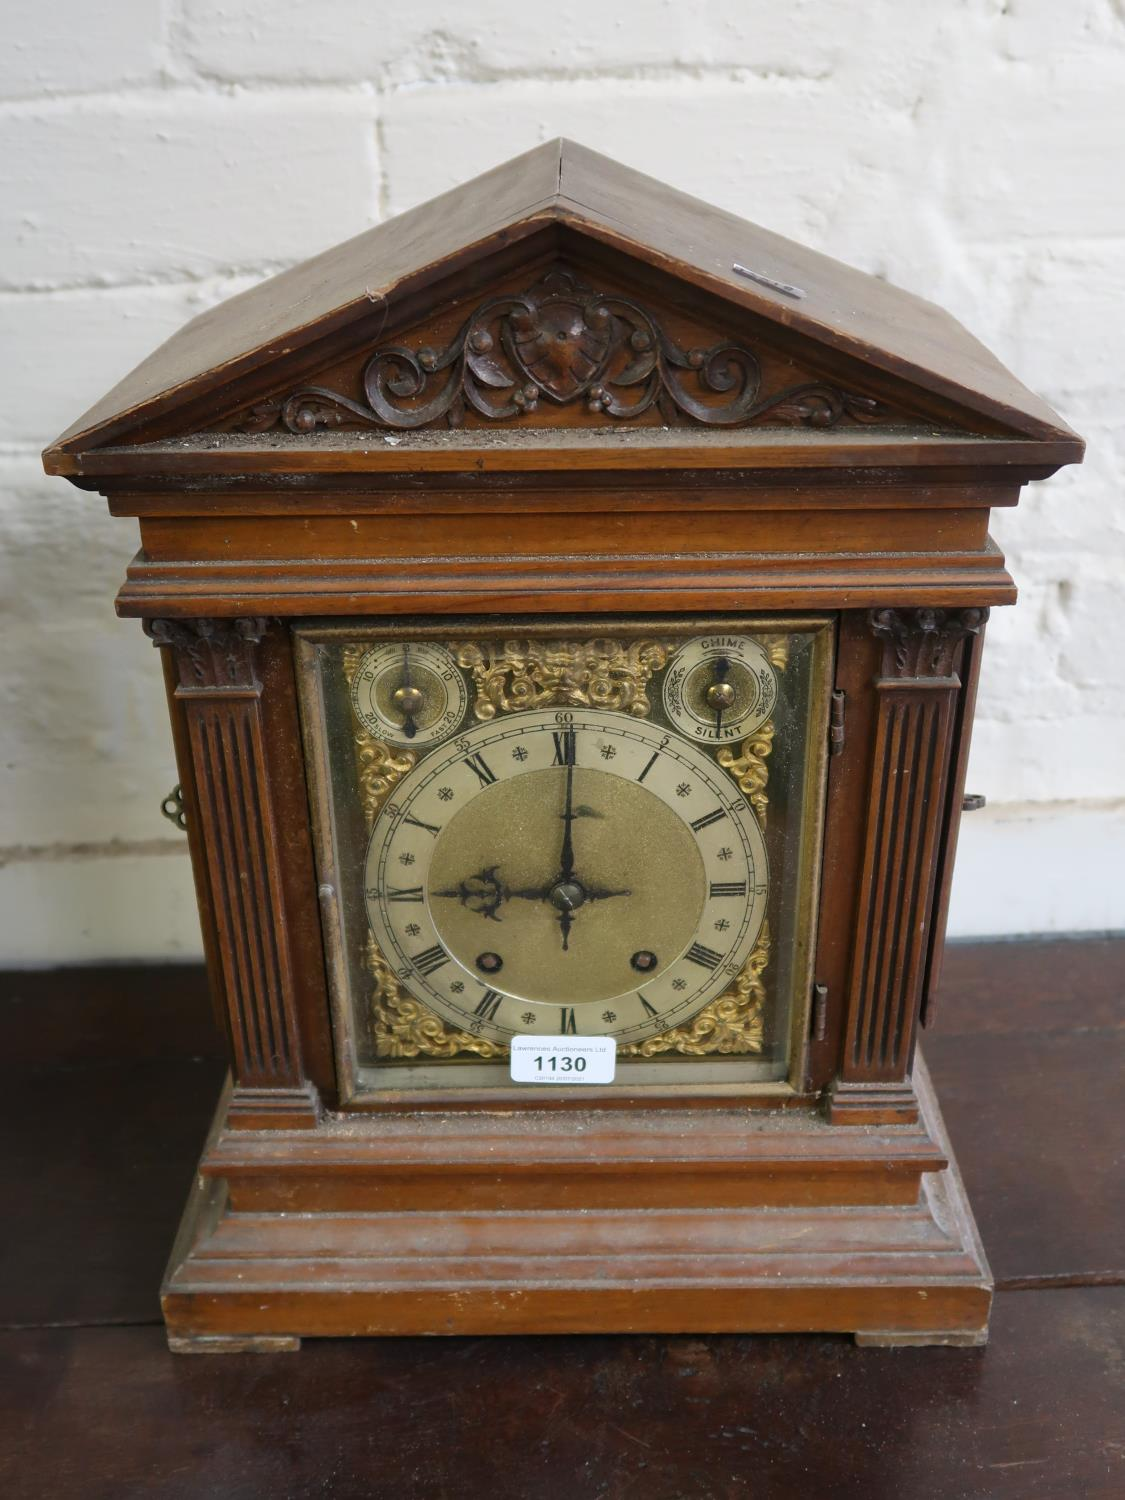 Late 19th Century Continental walnut mantel clock, the gilded and silvered dial with Roman and